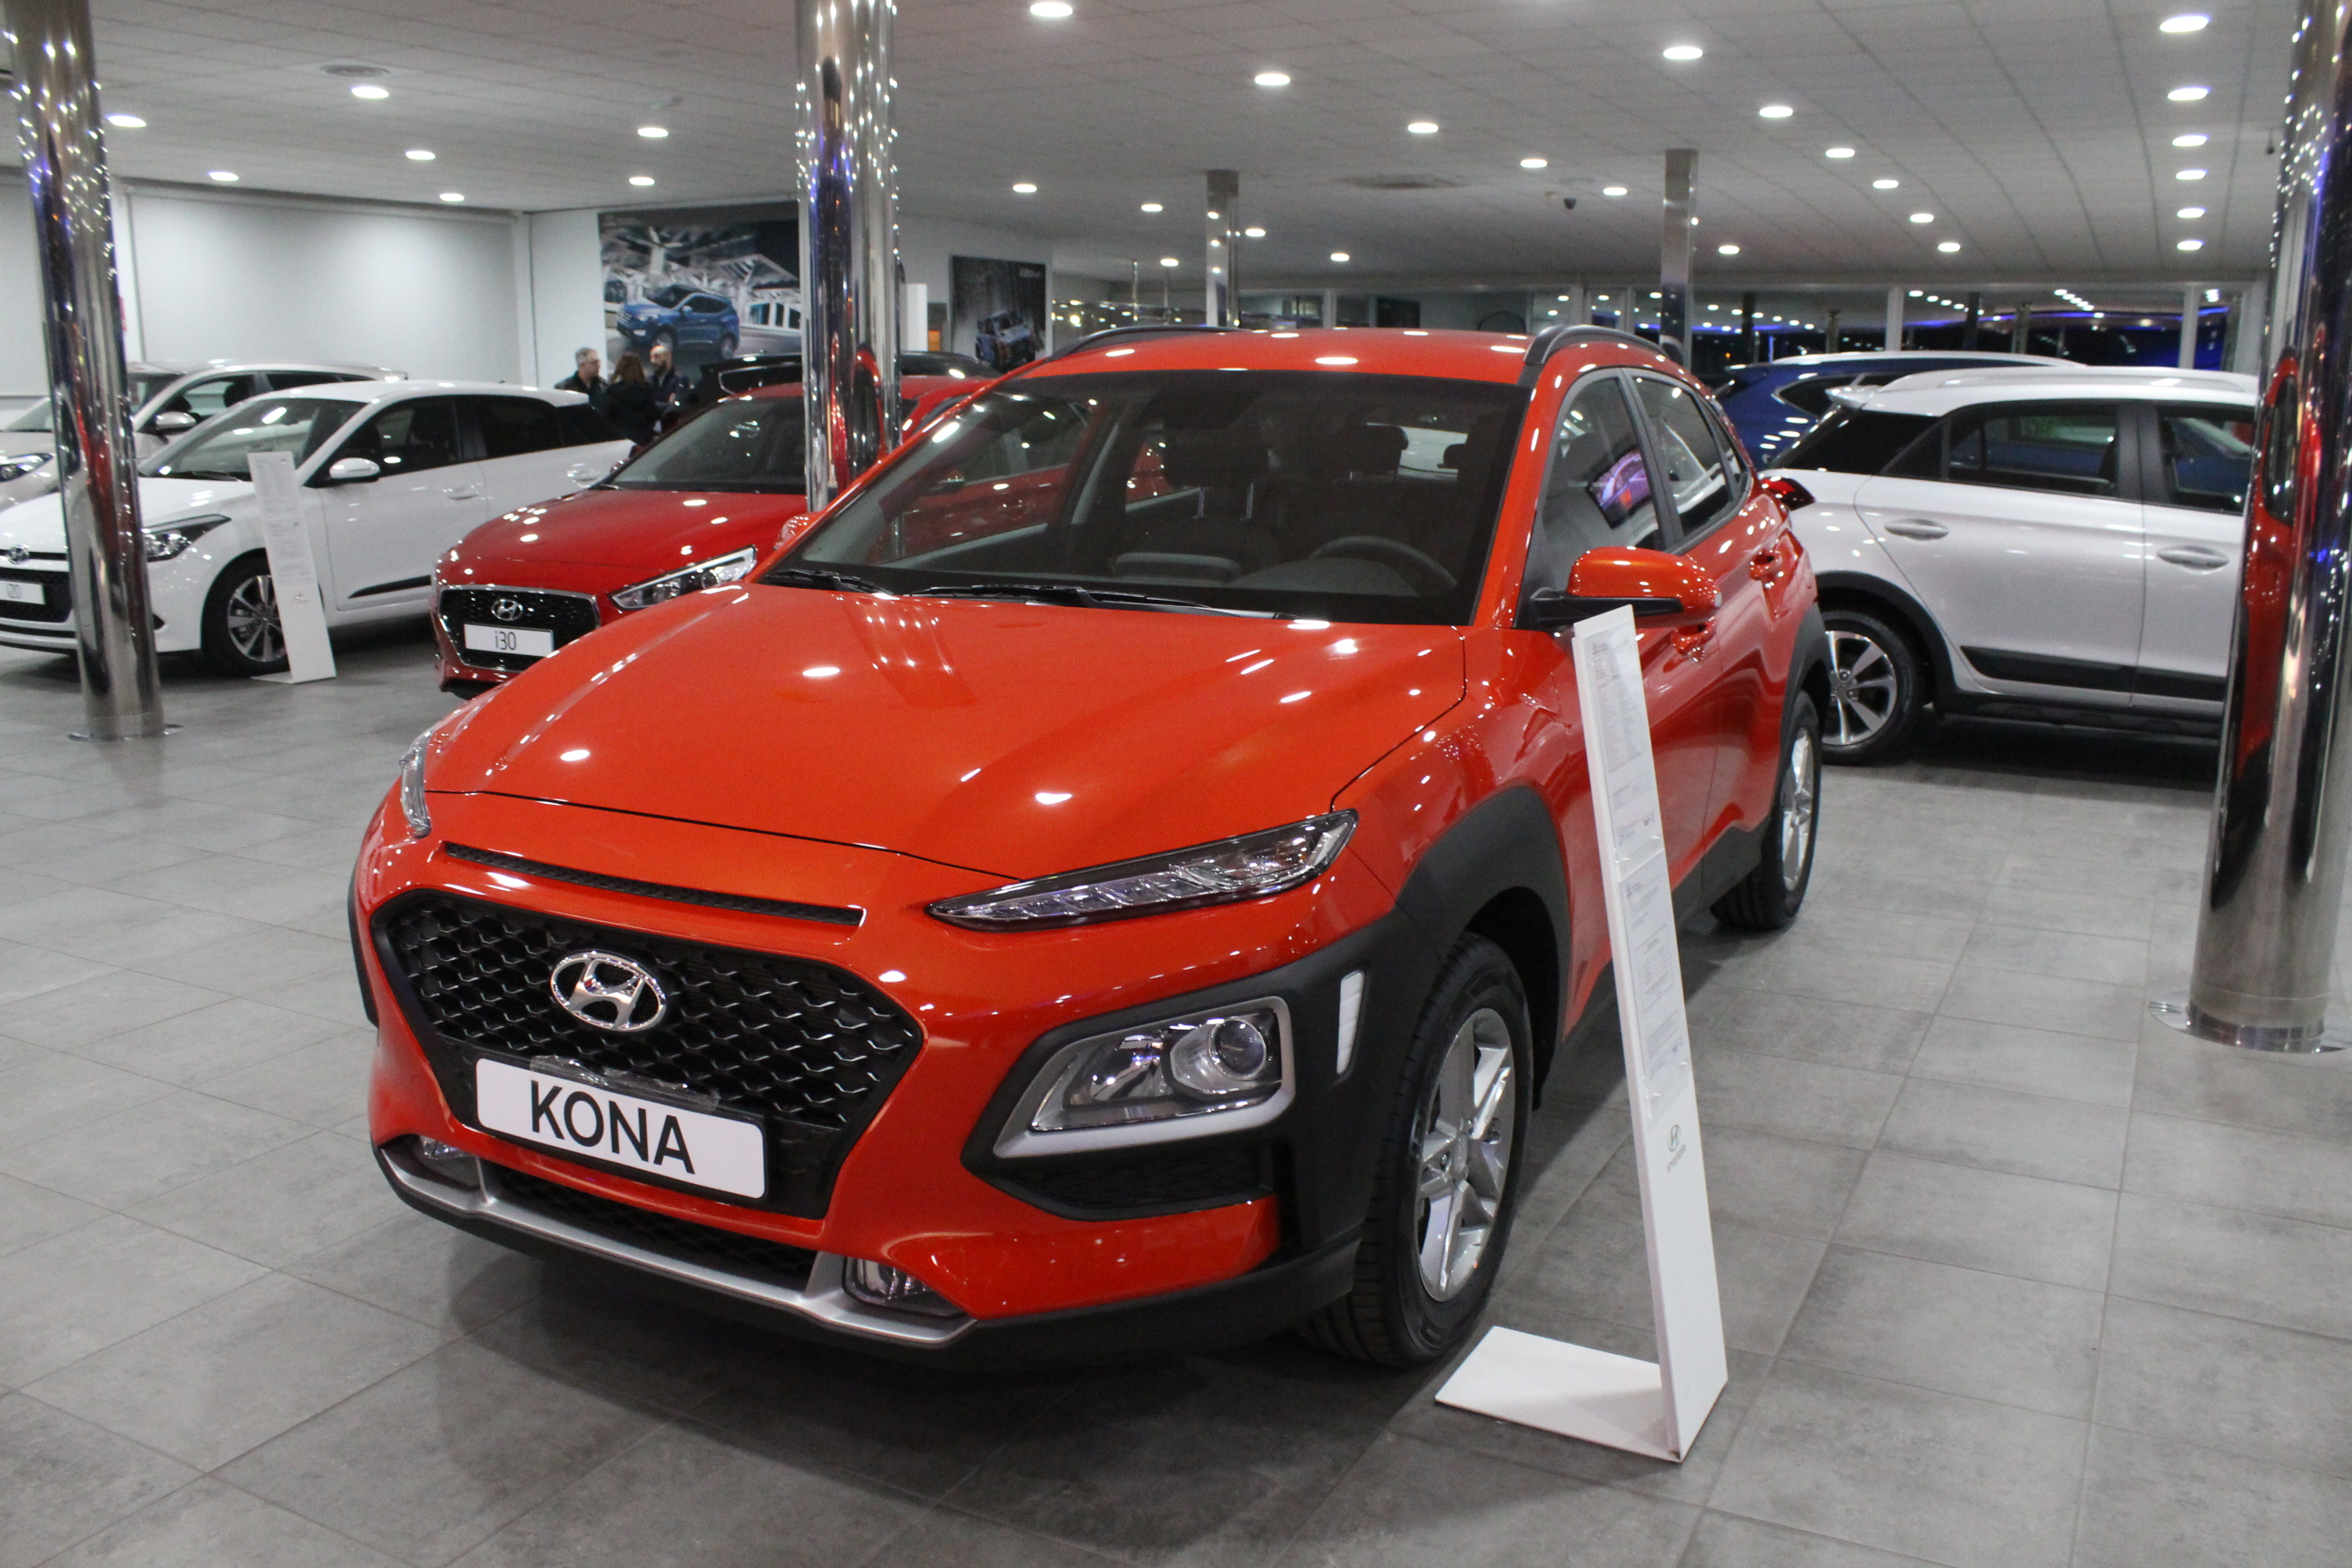 The all-new Hyundai Kona is available to test drive at the Autofima dealerships in Elche and Torrevieja.